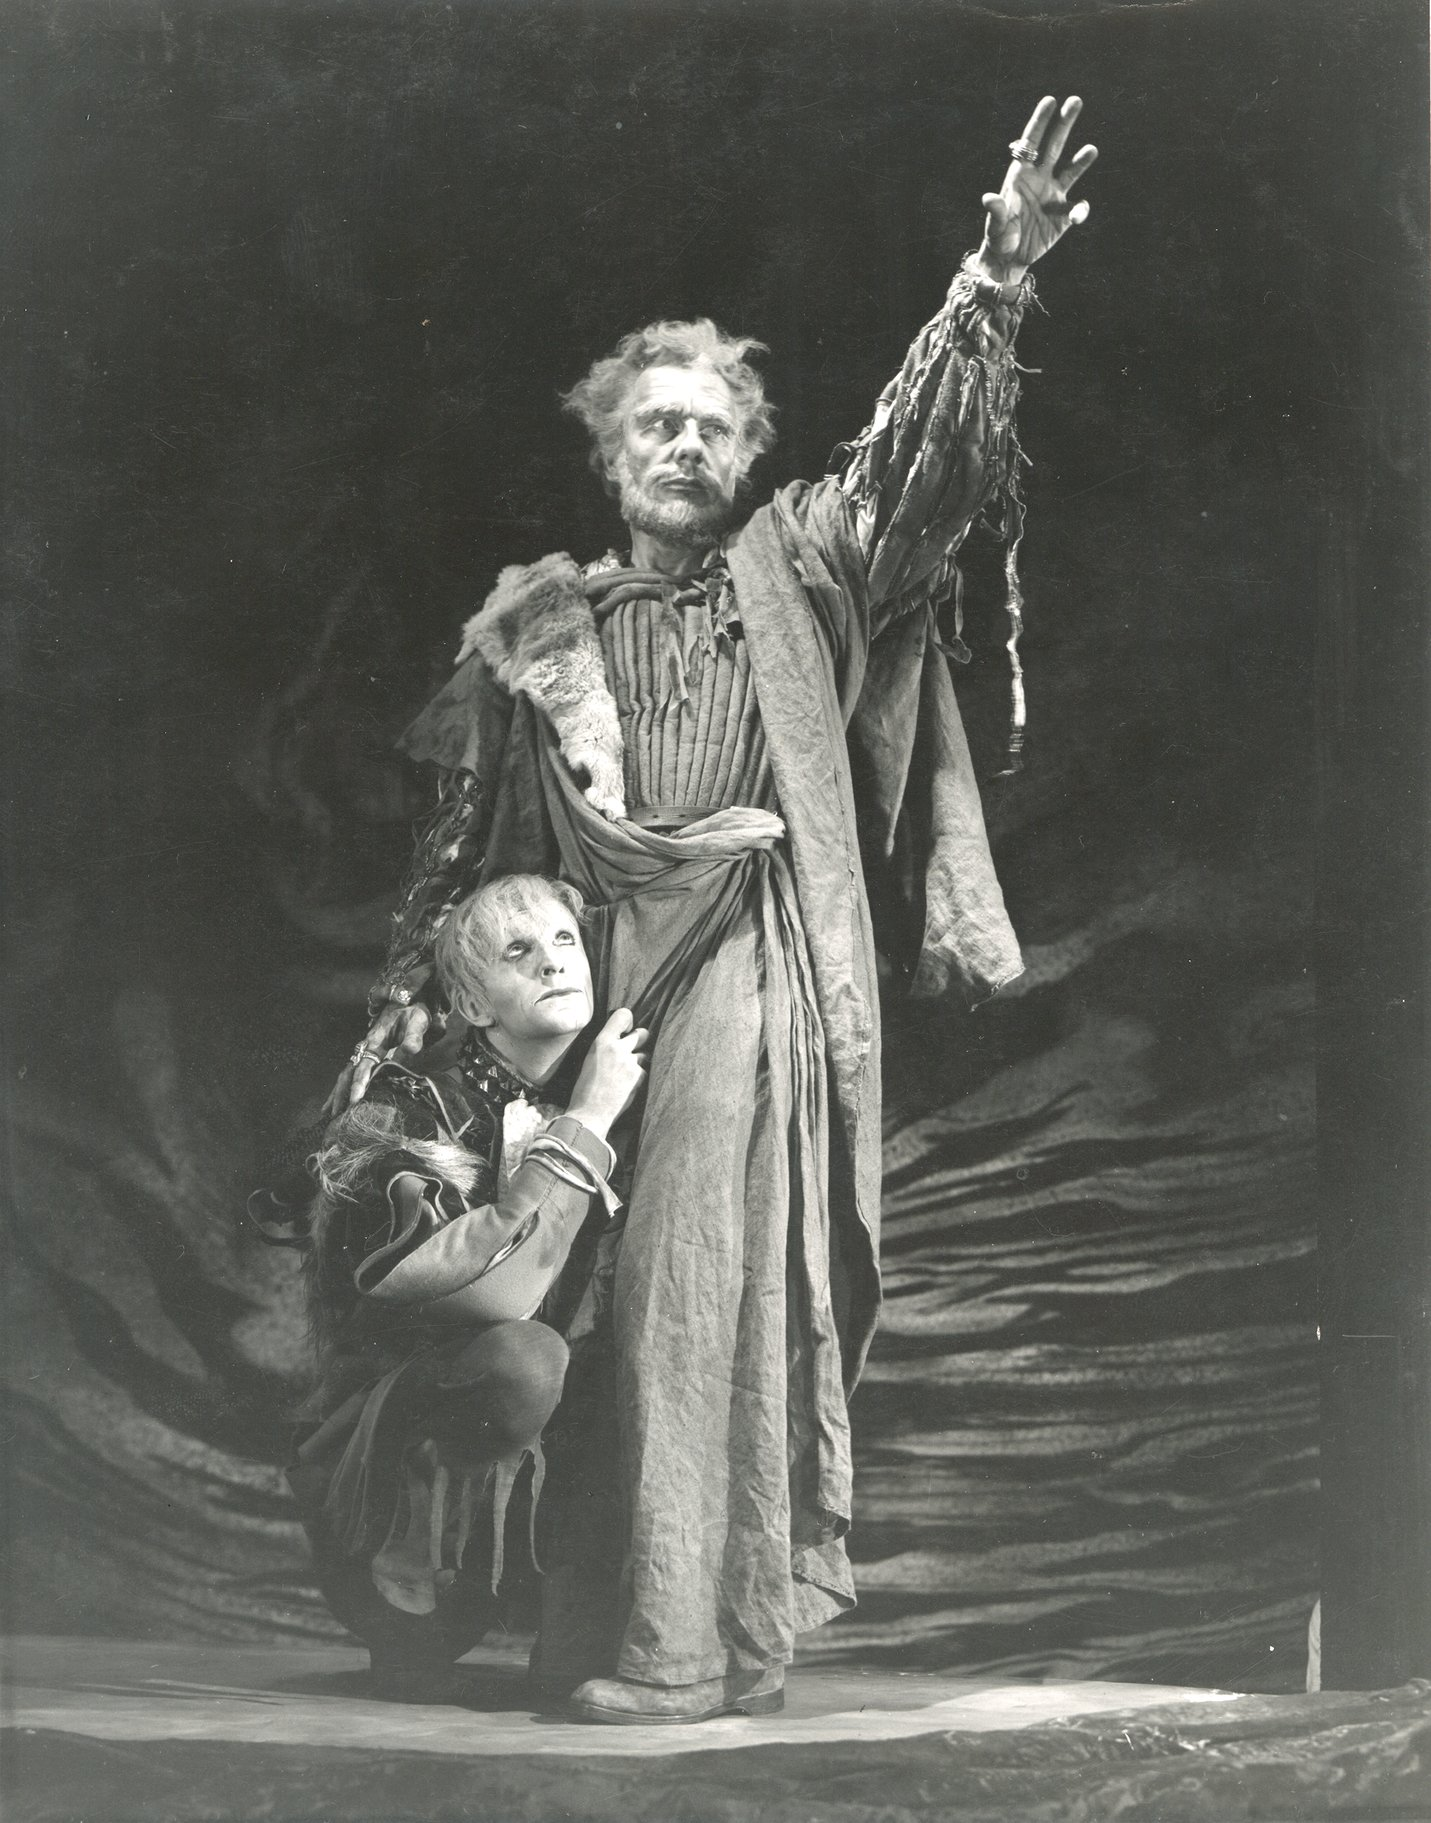 A man clutches at the robes of an older man who stands above him.